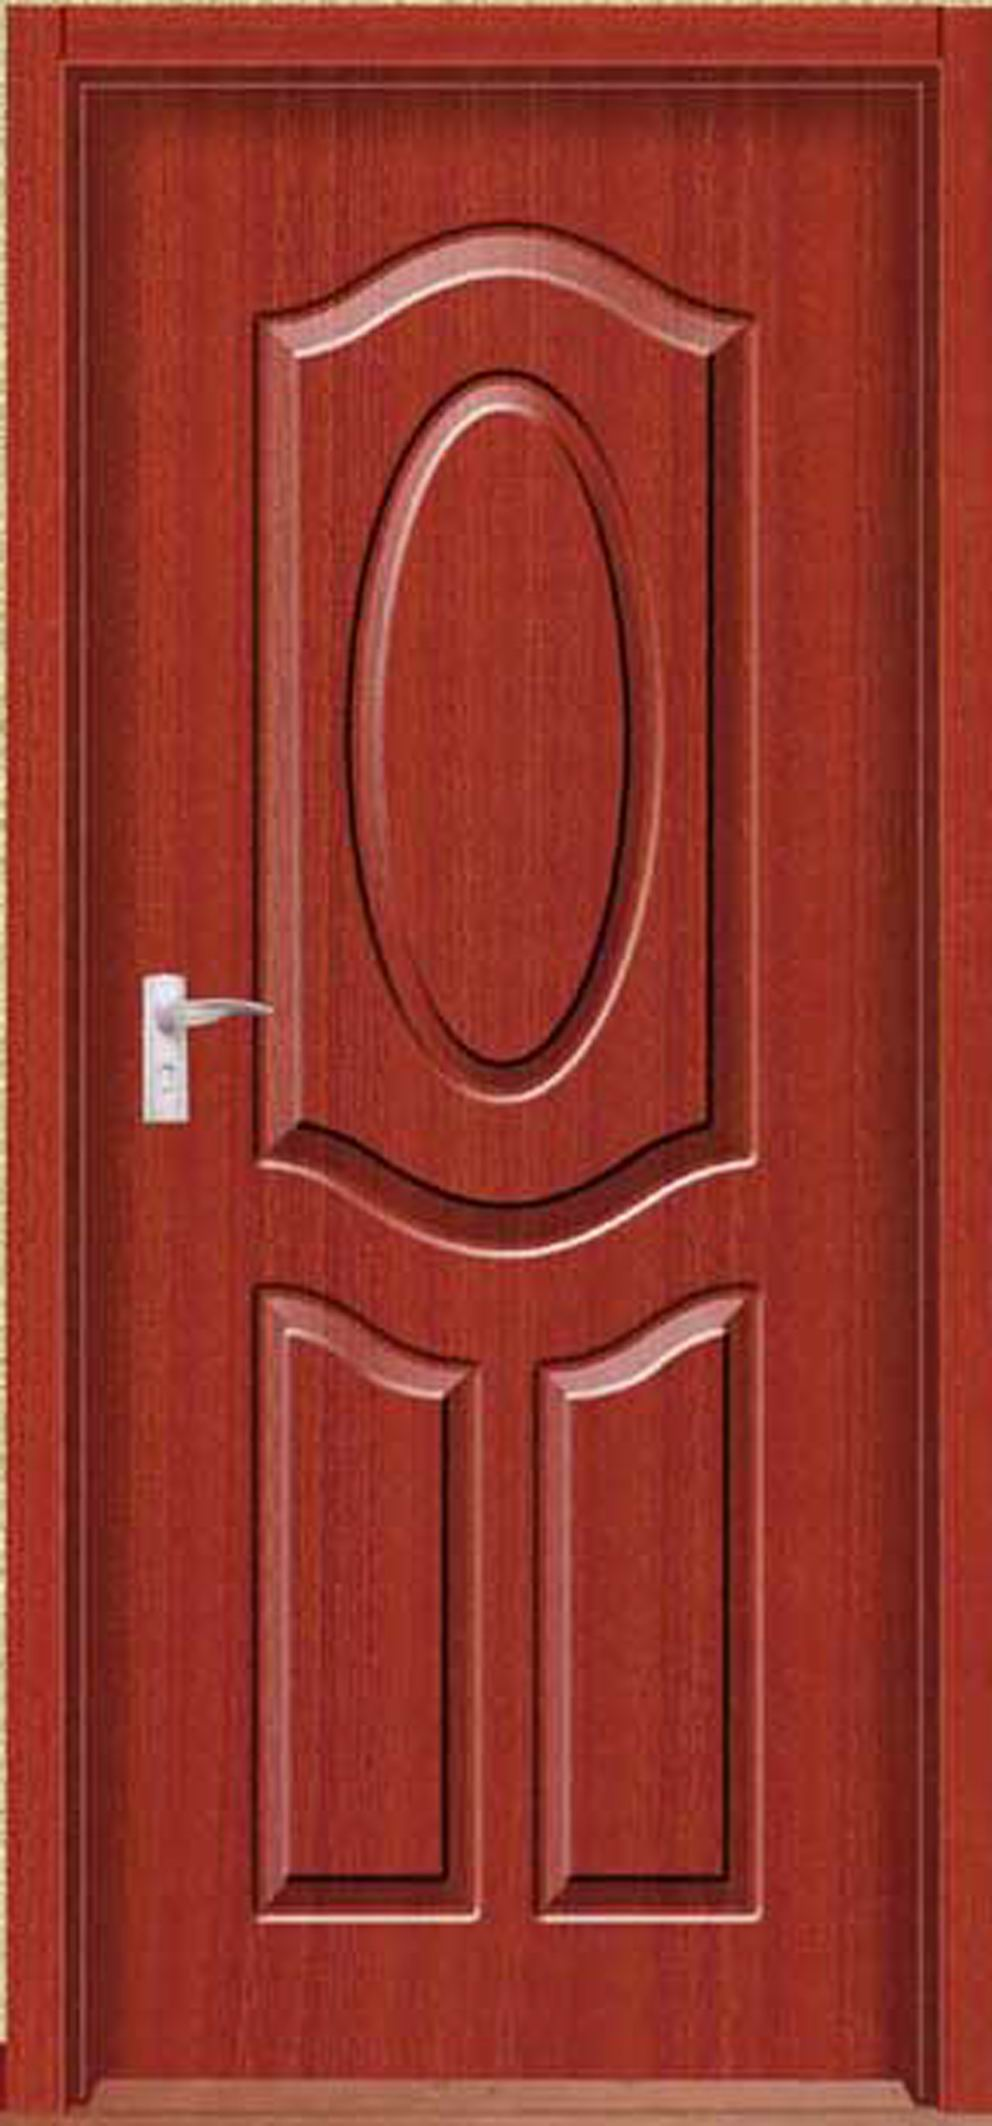 The meaning and symbolism of the word - «Door»